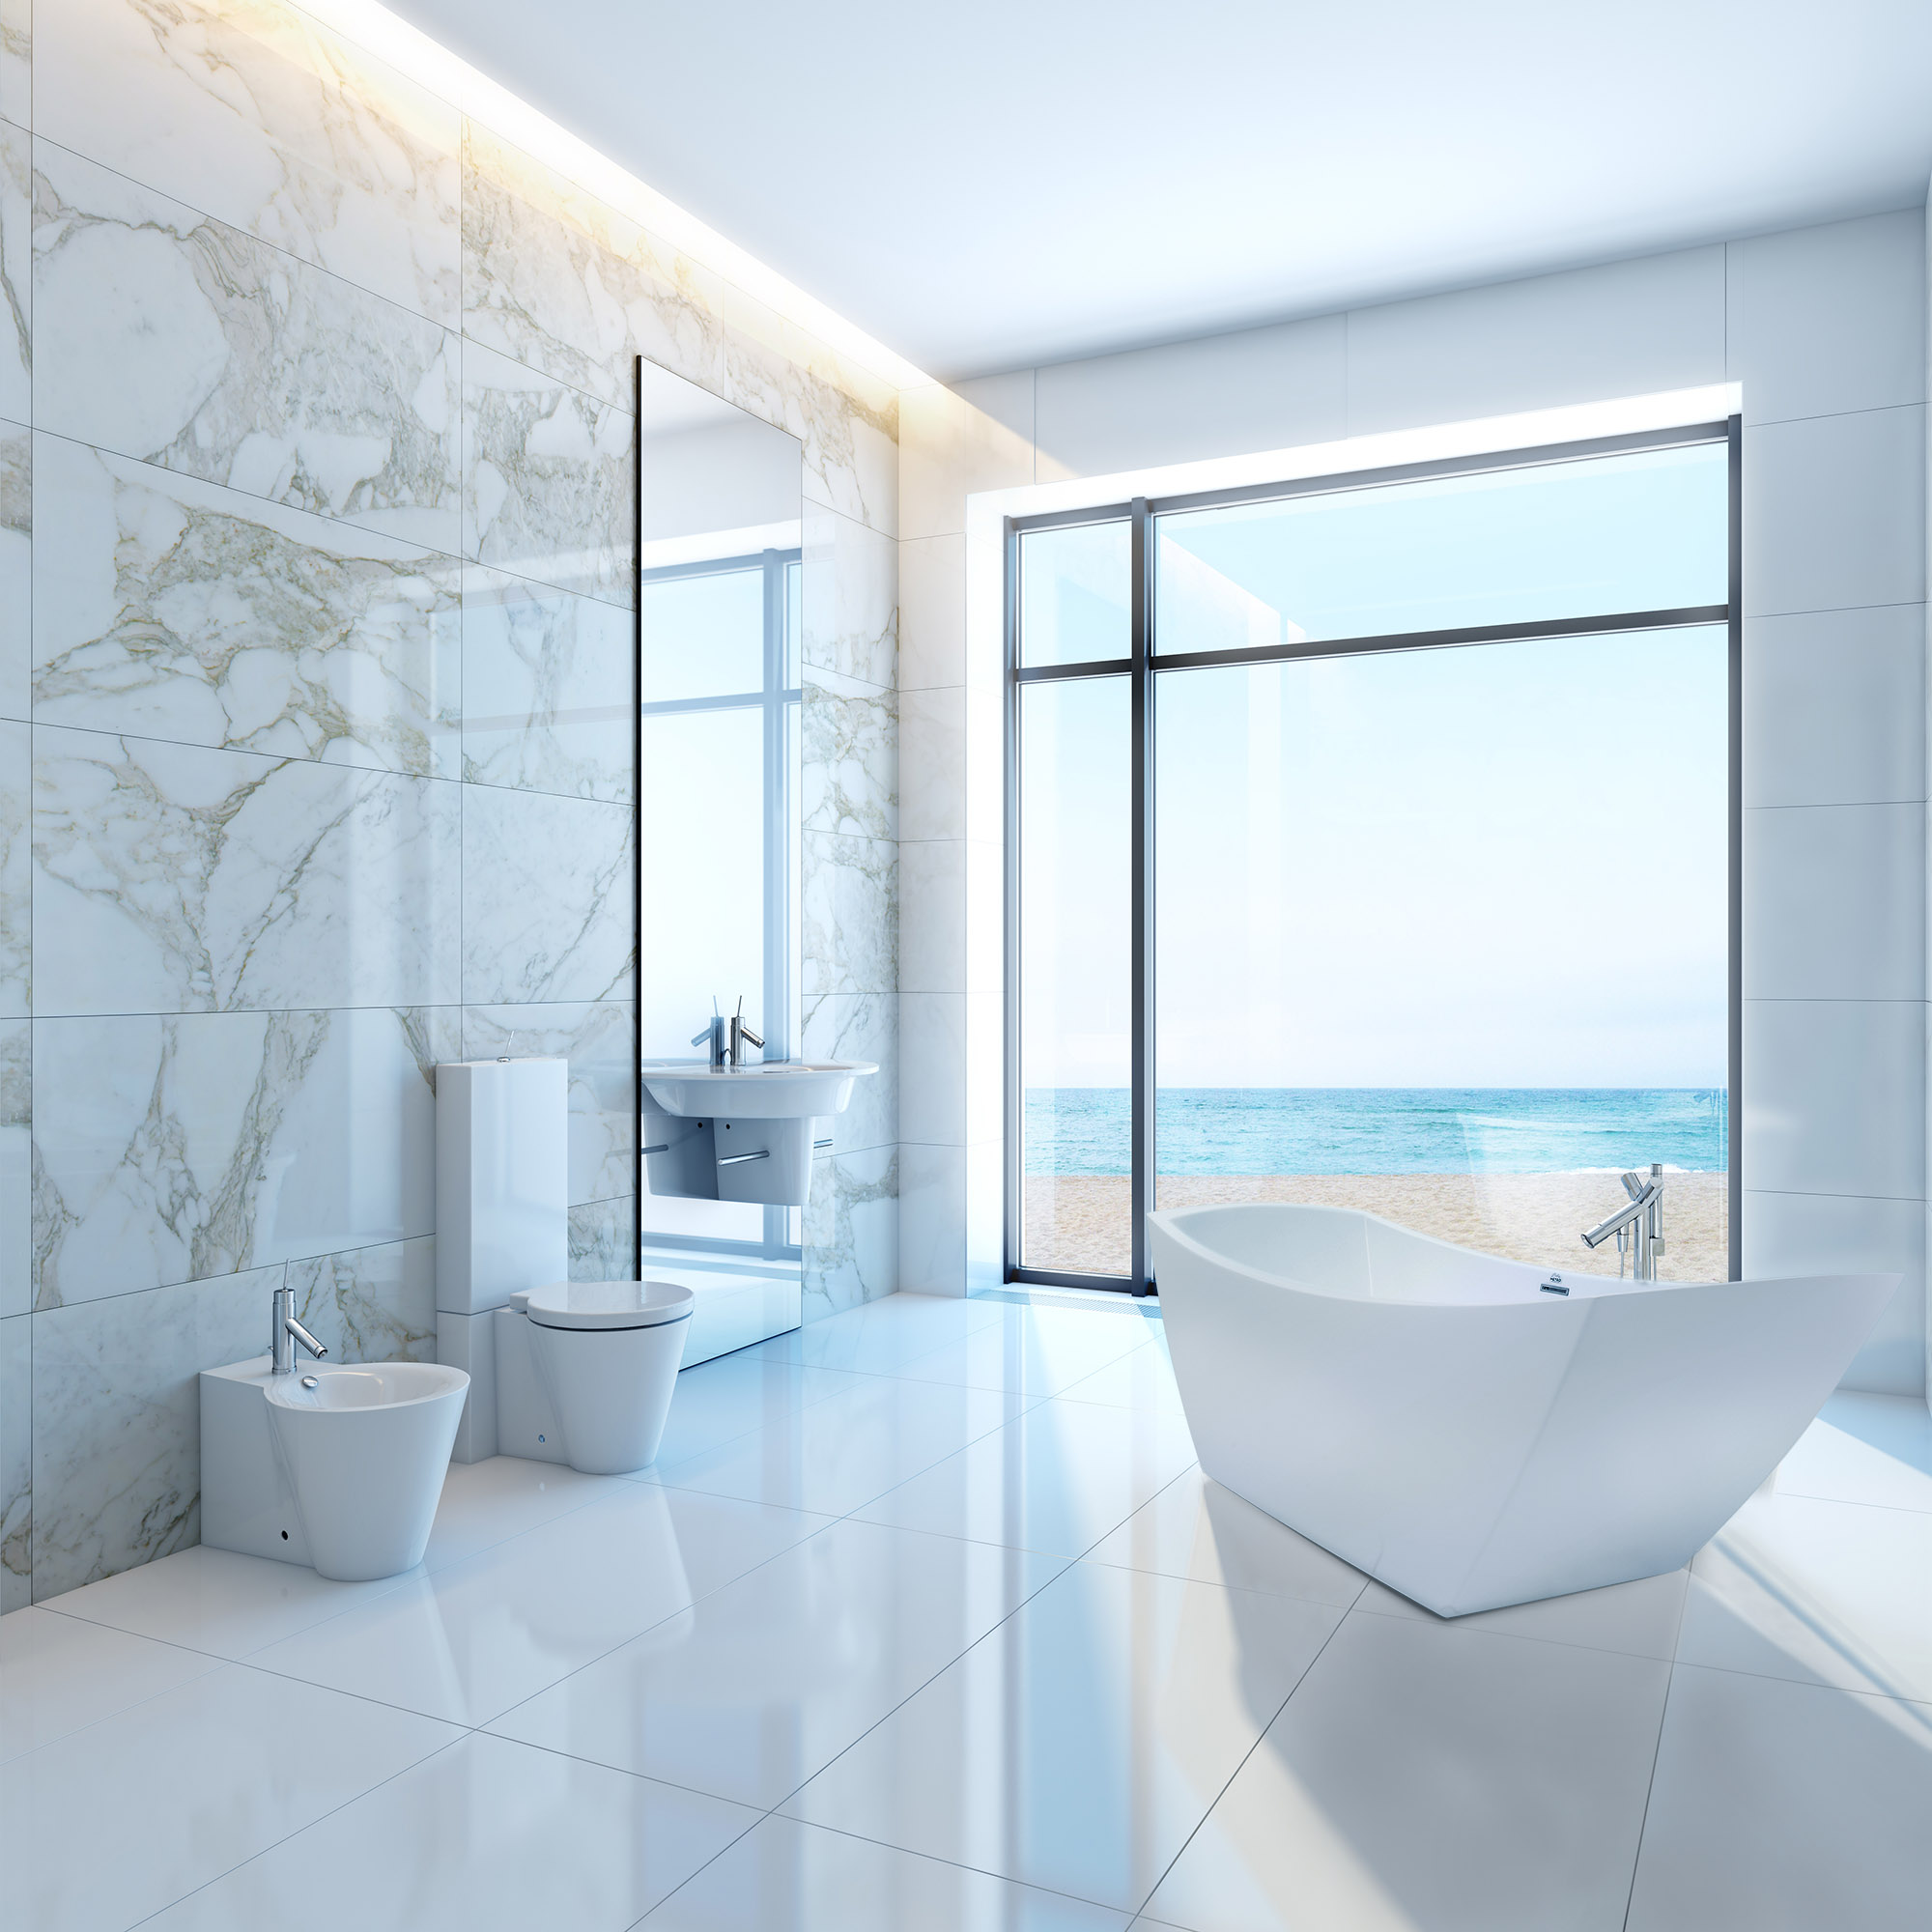 mosaic wet d img sparkle bath mixed effect wall gallery waterfall modern with grey shaped photo white around a bathtub